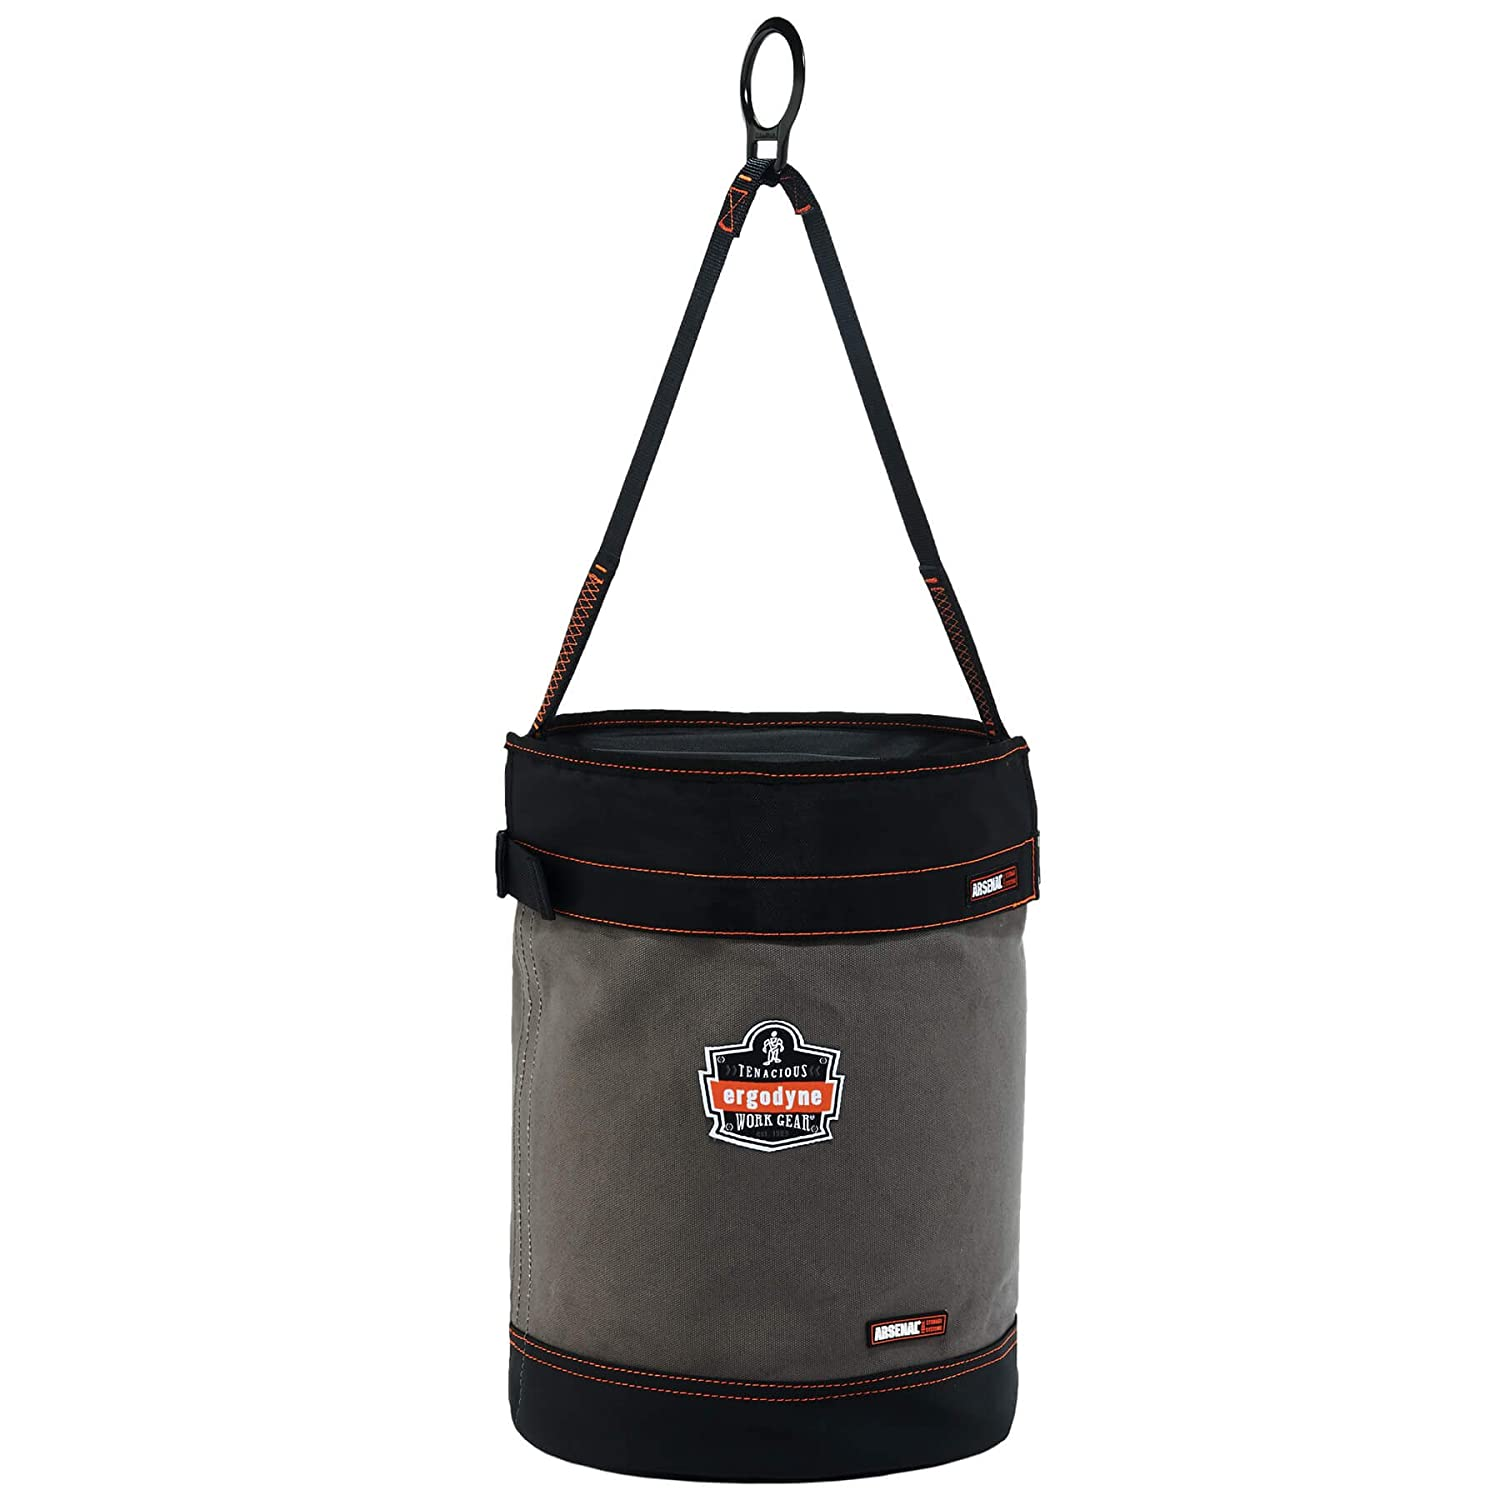 Ergodyne Arsenal 5960 Large Canvas Tool Bucket with Attachment Rings Gray